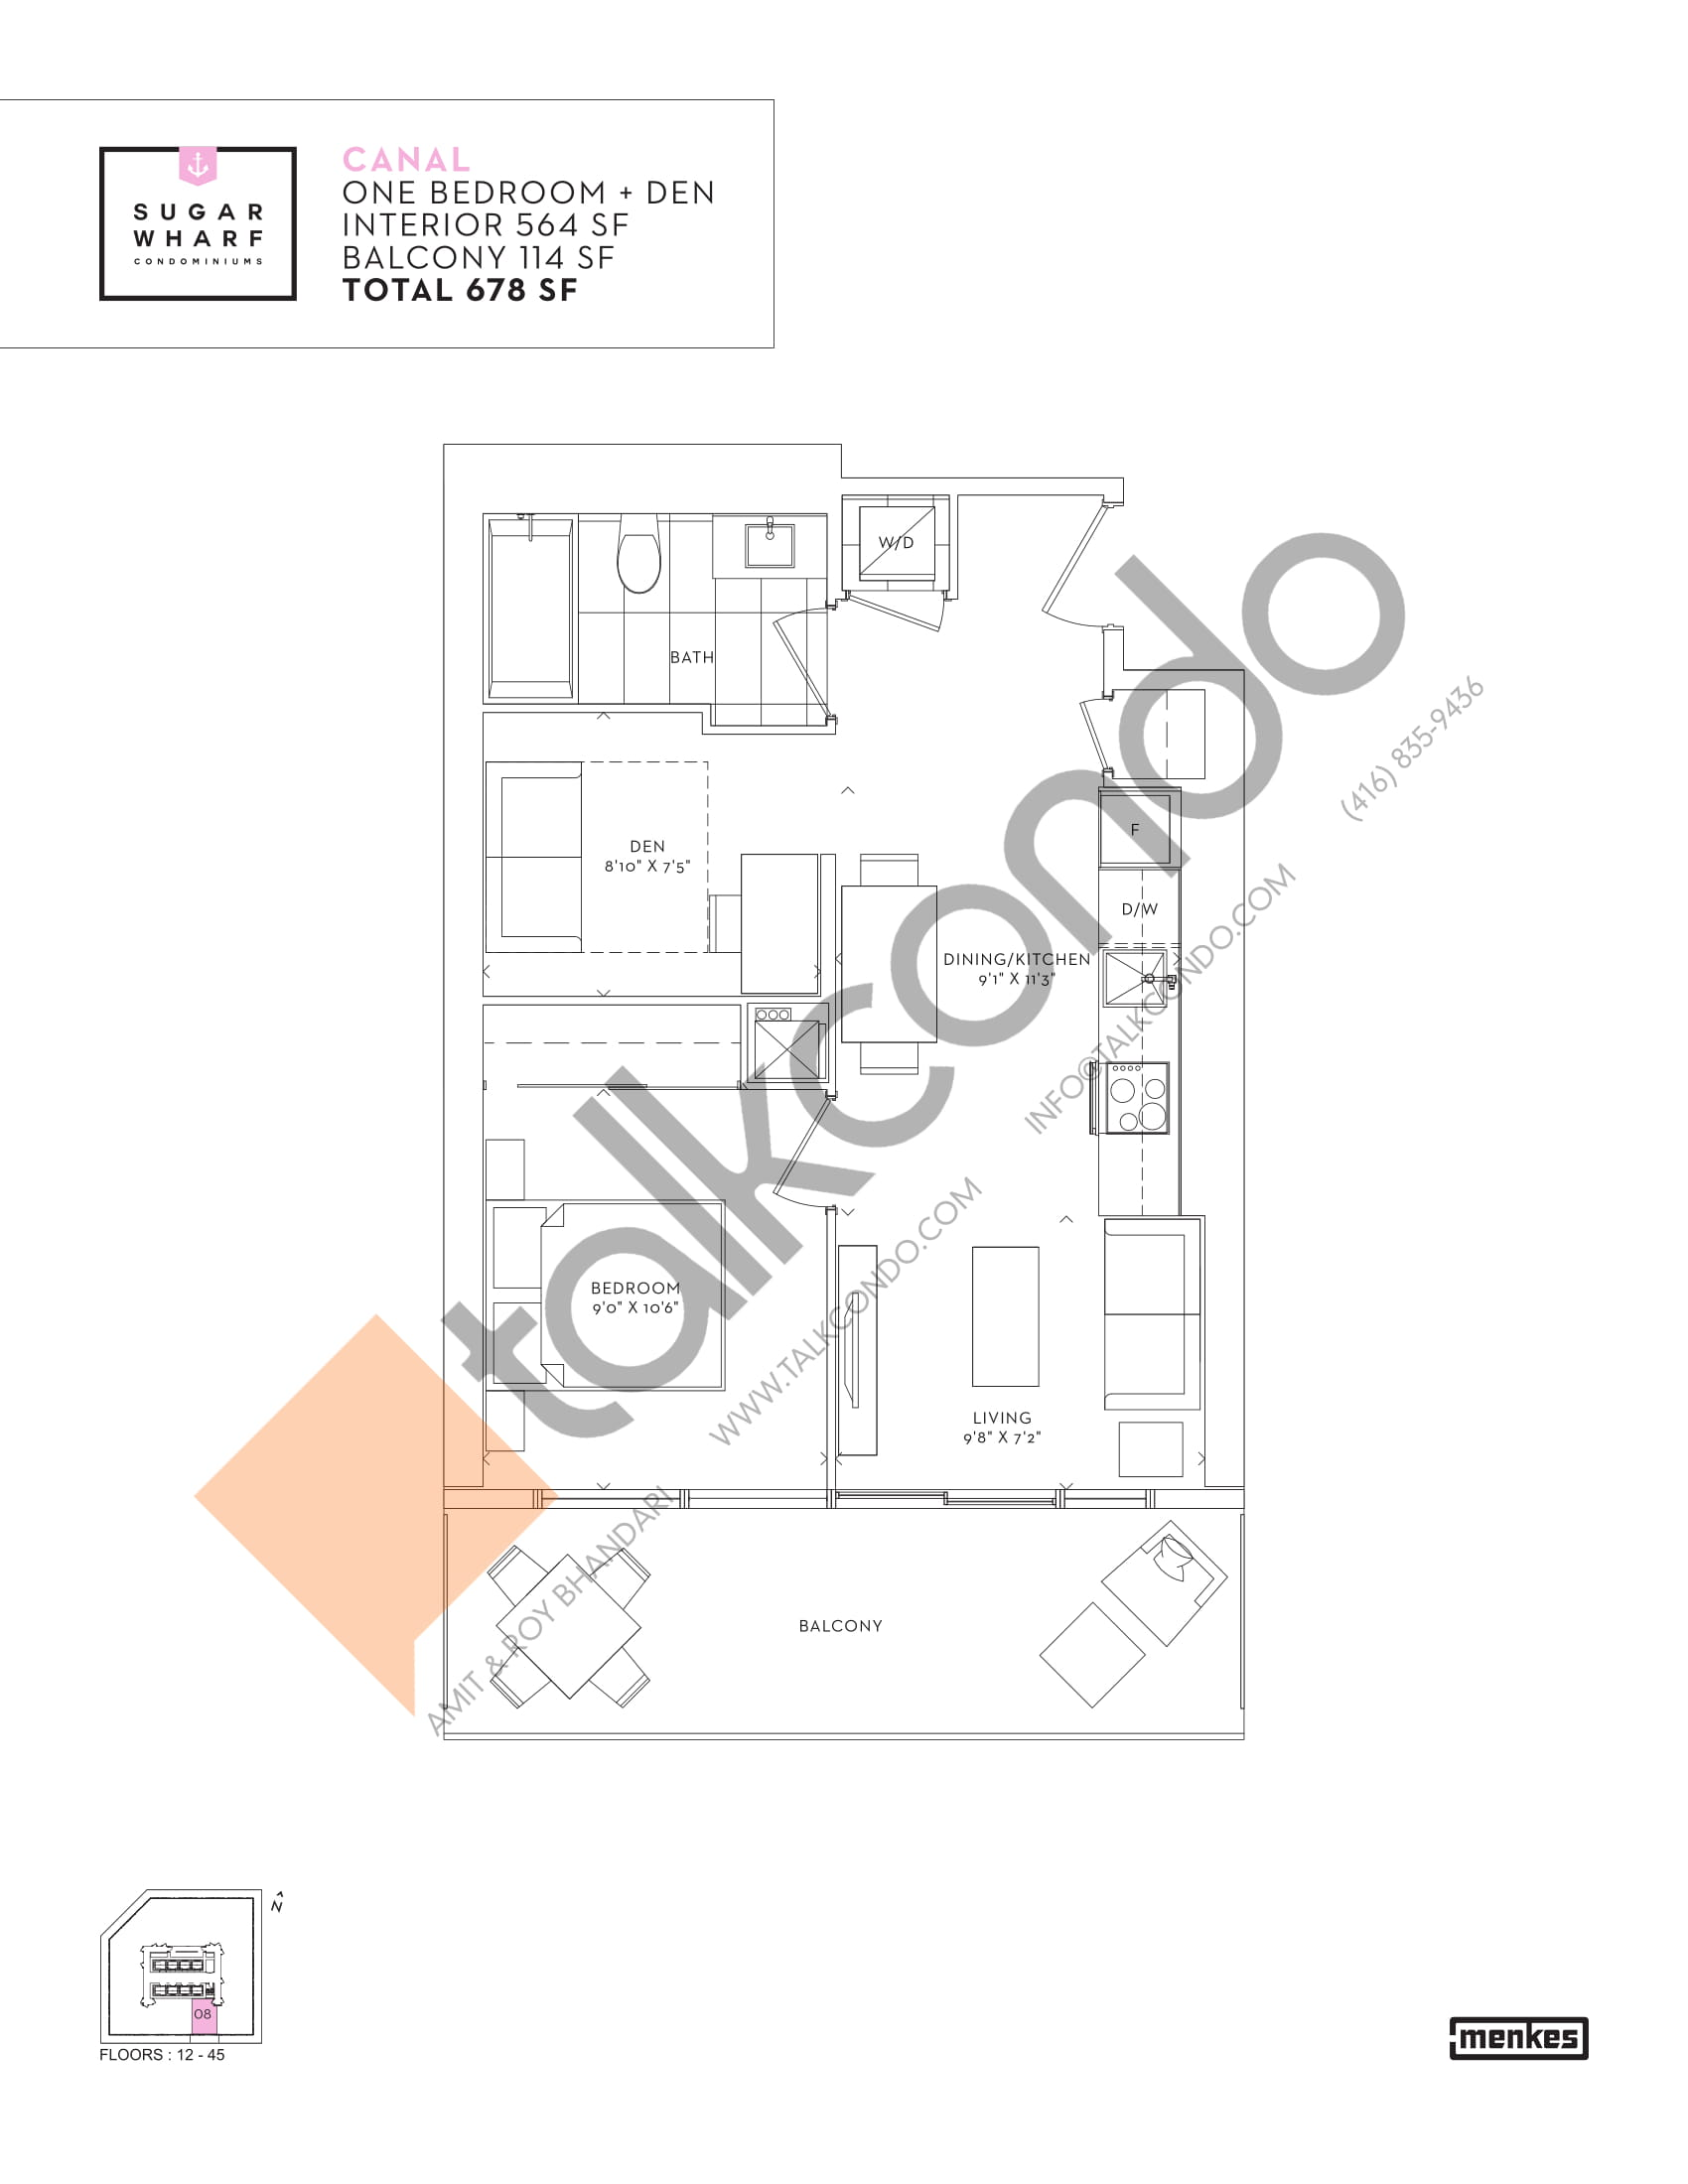 Canal Floor Plan at Sugar Wharf Condos East Tower - 564 sq.ft